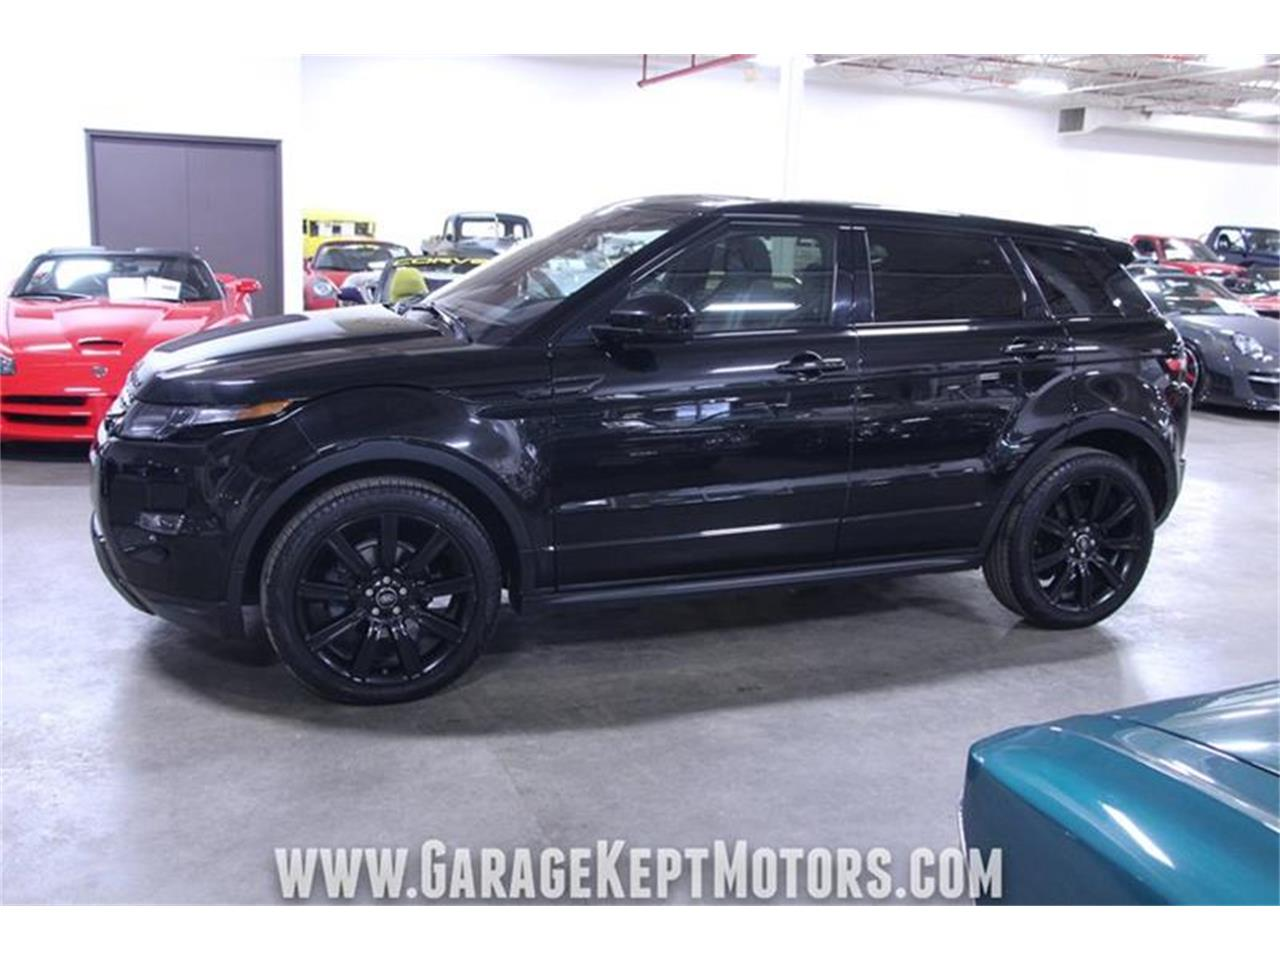 Large Picture of '15 Range Rover Evoque - PWYY